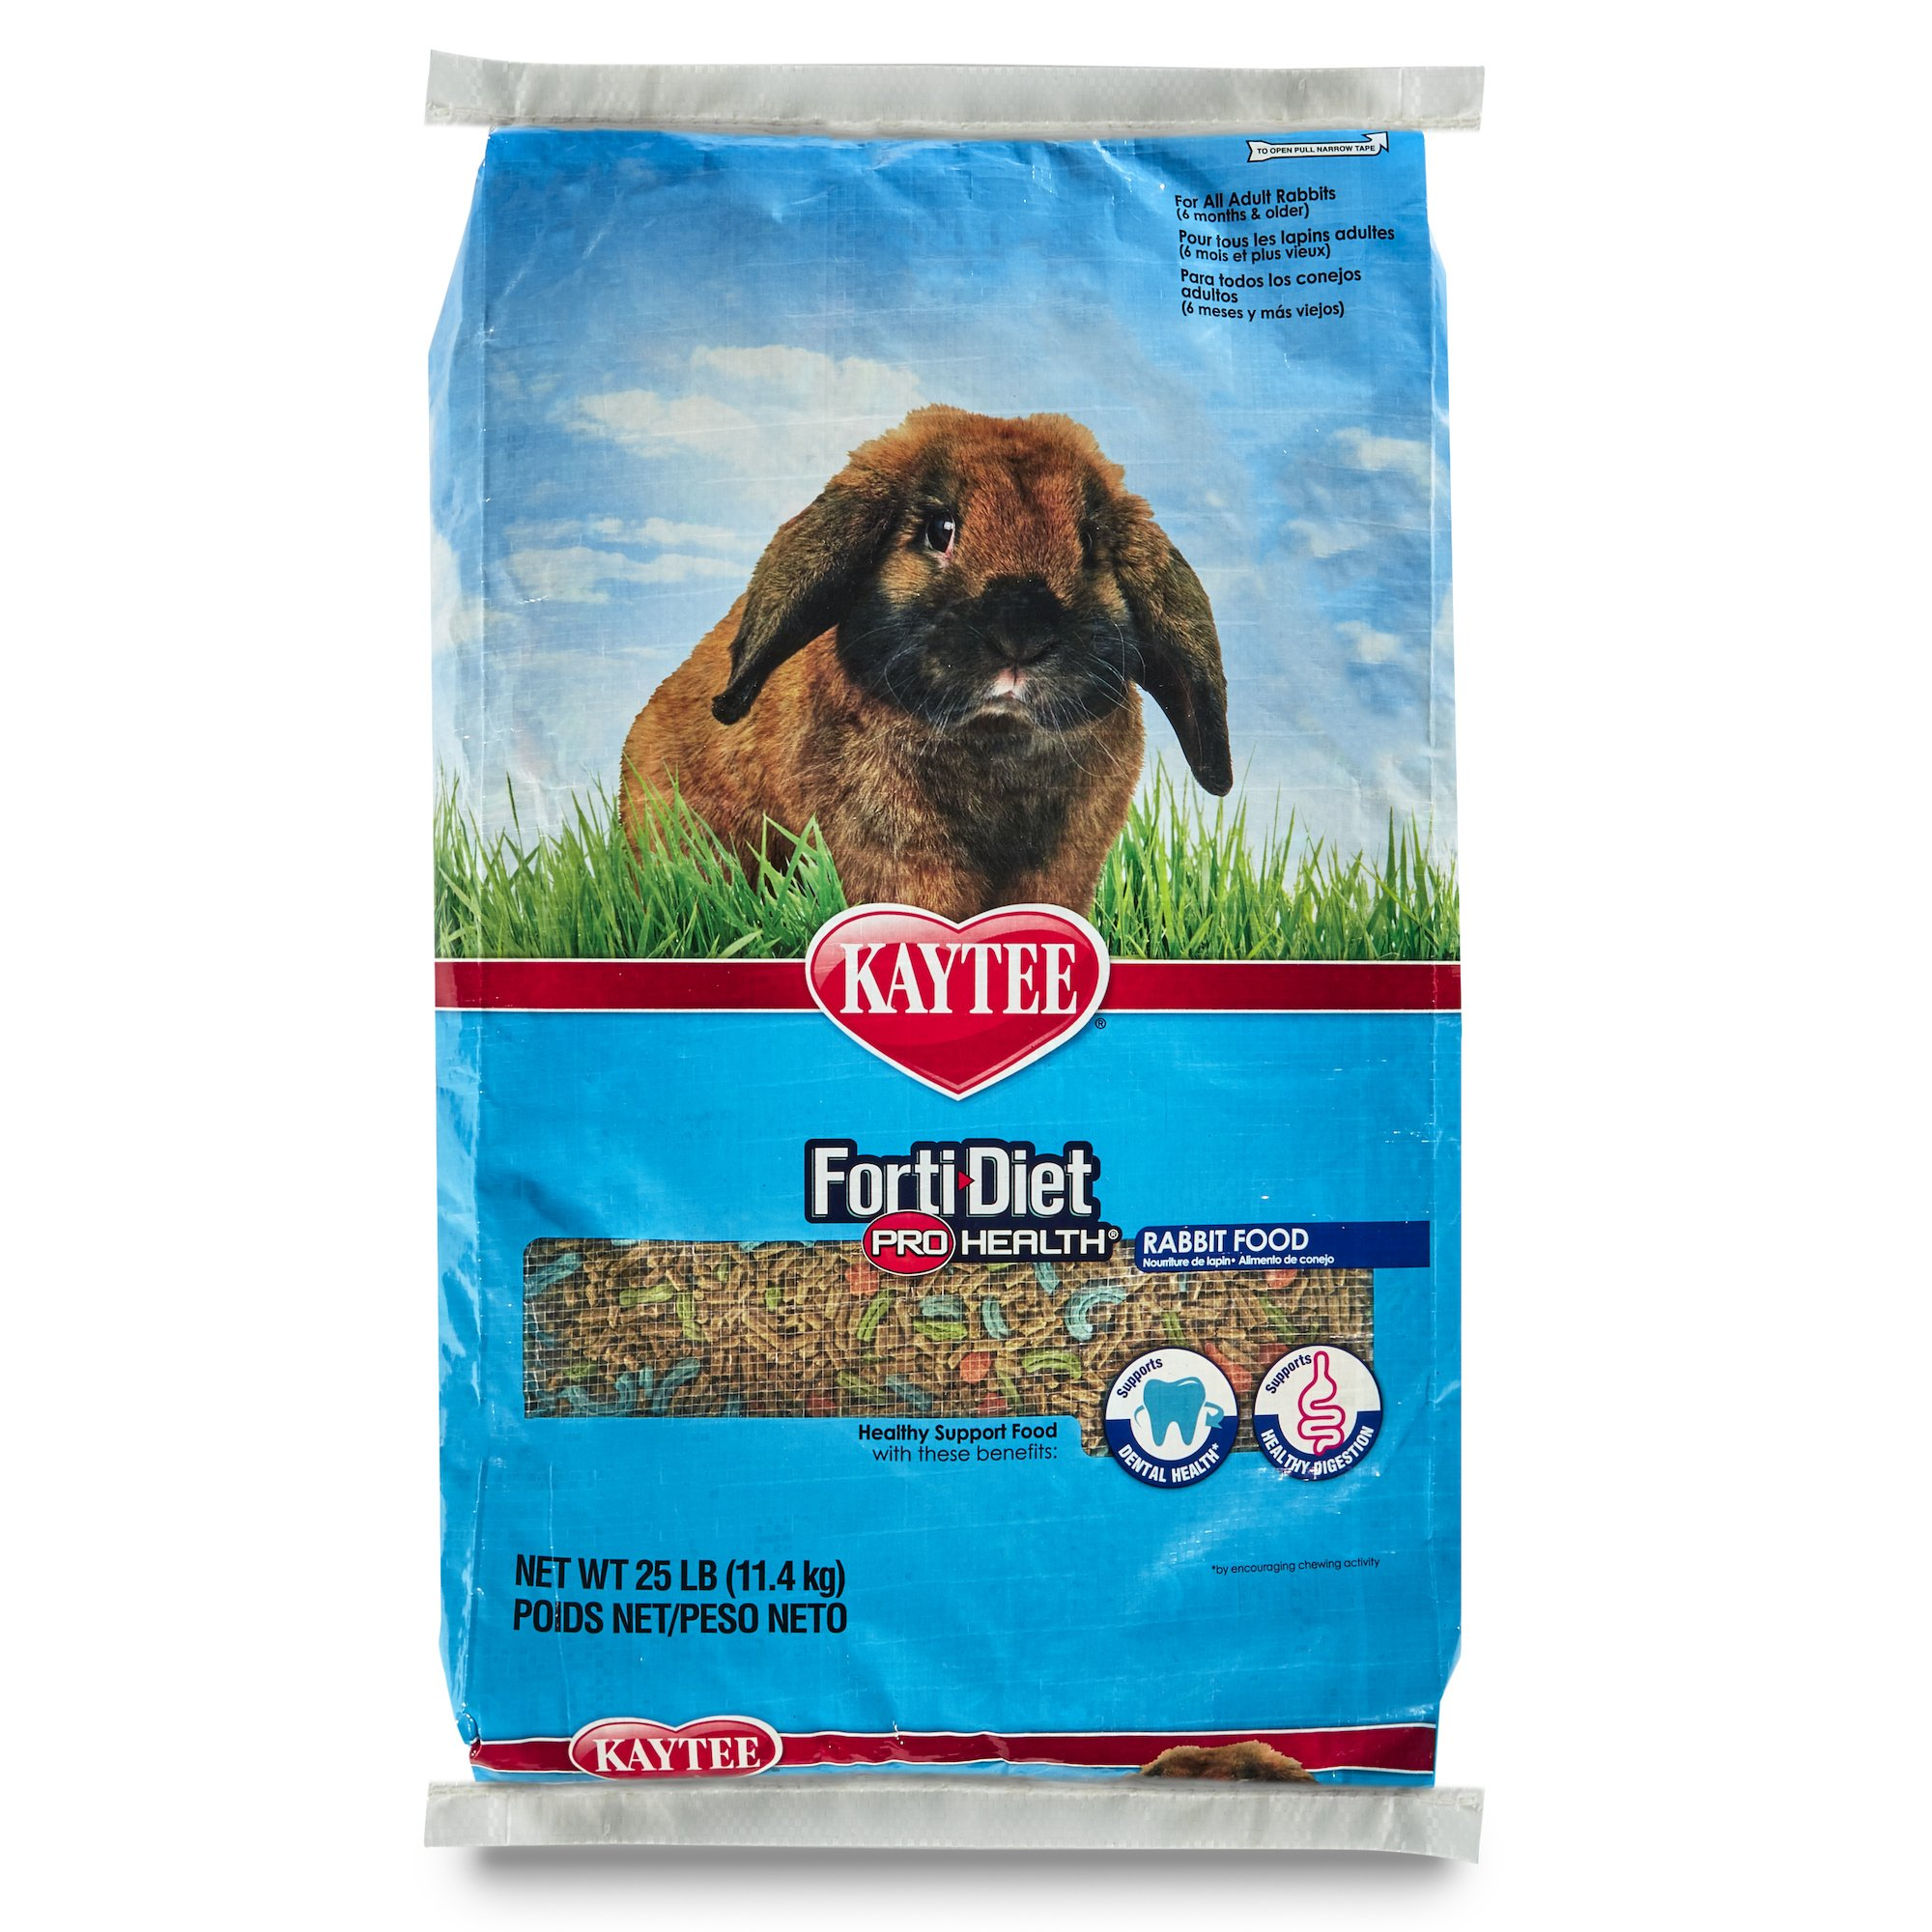 Kaytee Forti Diet Pro Health Rabbit Food For Adult Rabbit, 25-Pound